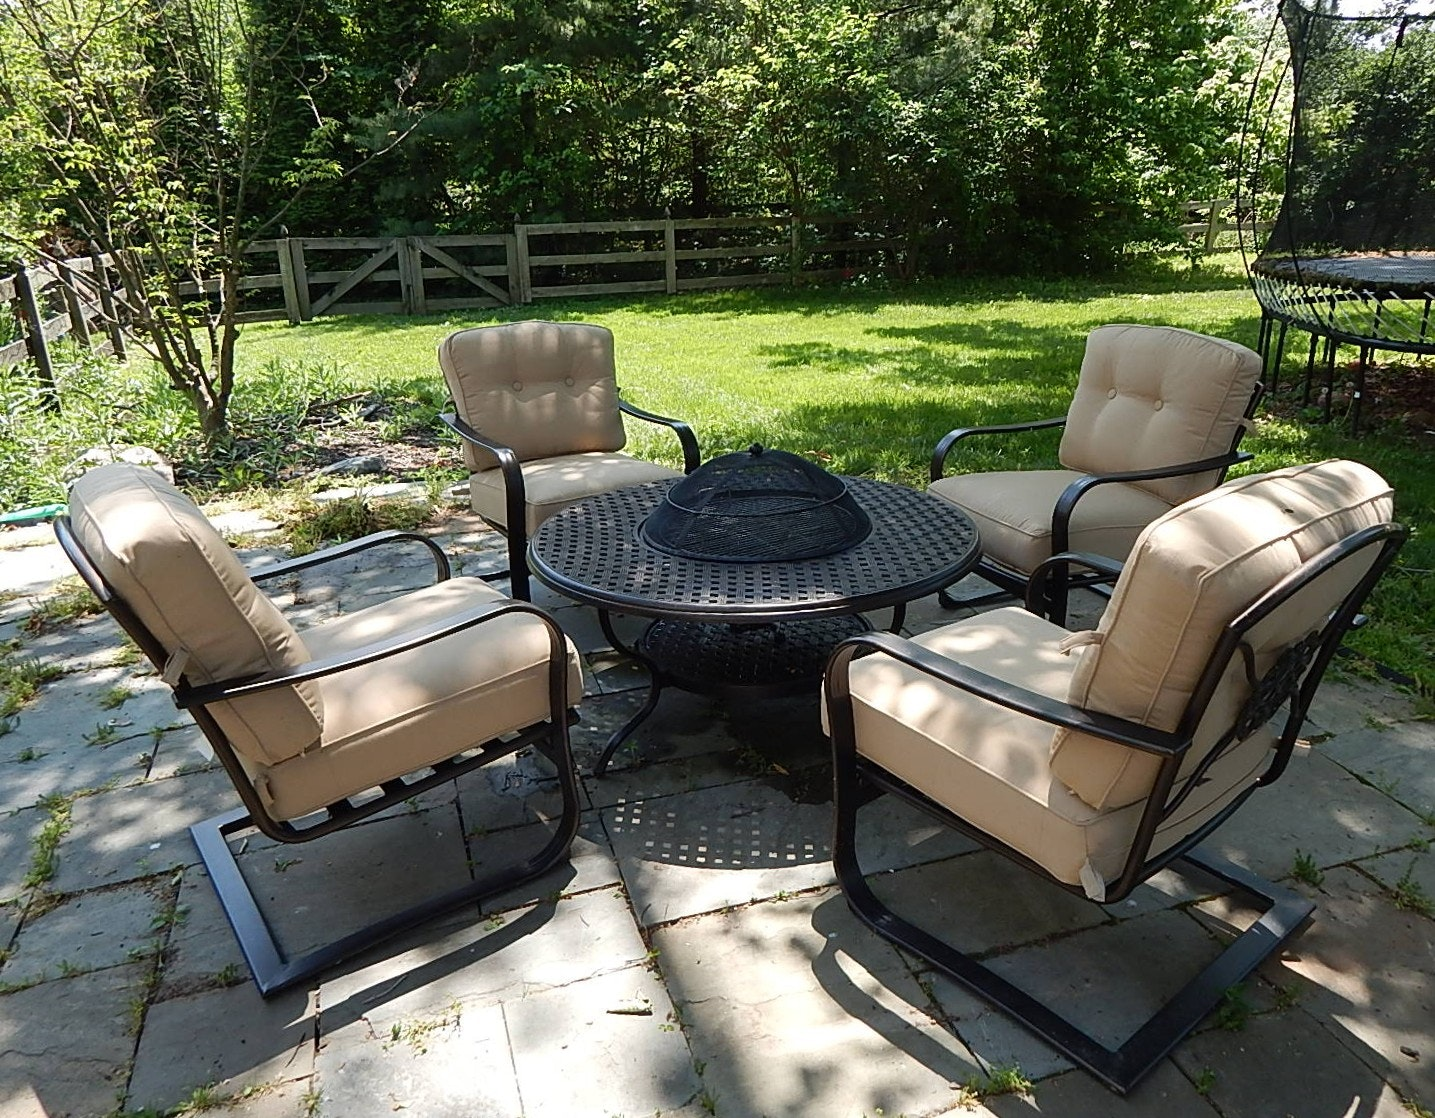 Watson's Patio Fire Pit/Grill Table and Four Chairs